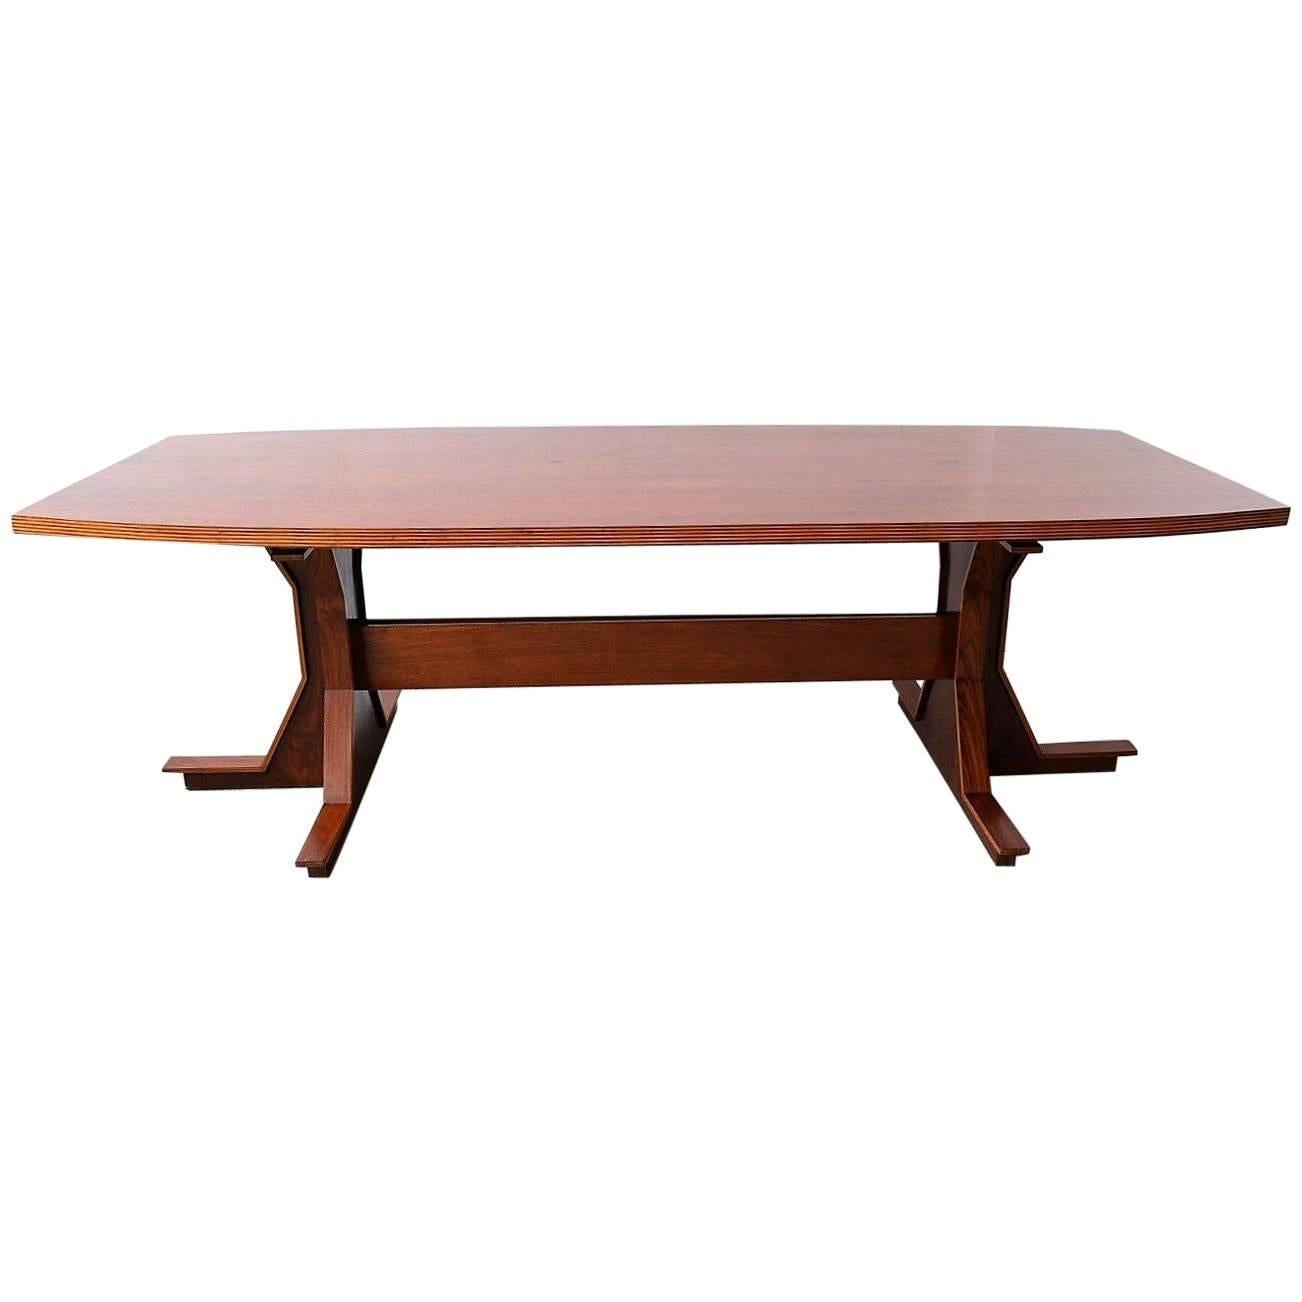 Italian Midcentury Dining or Conference Table, 1950s